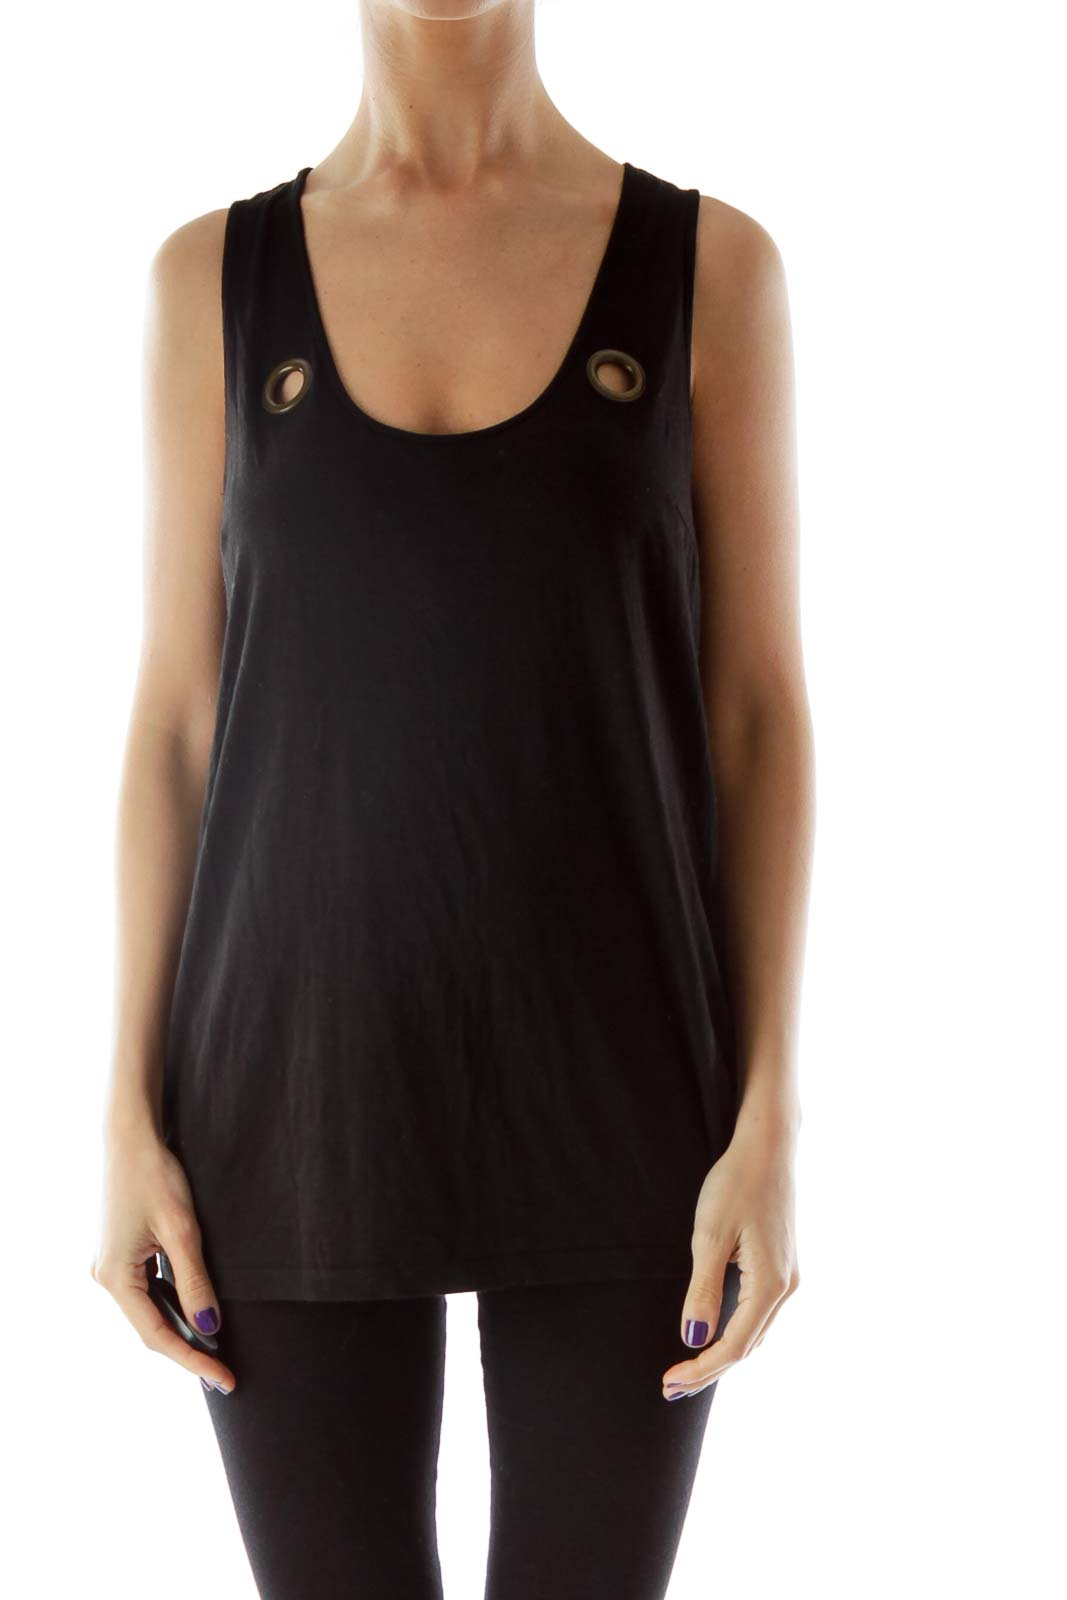 Black Tank Top with Hole Detailing